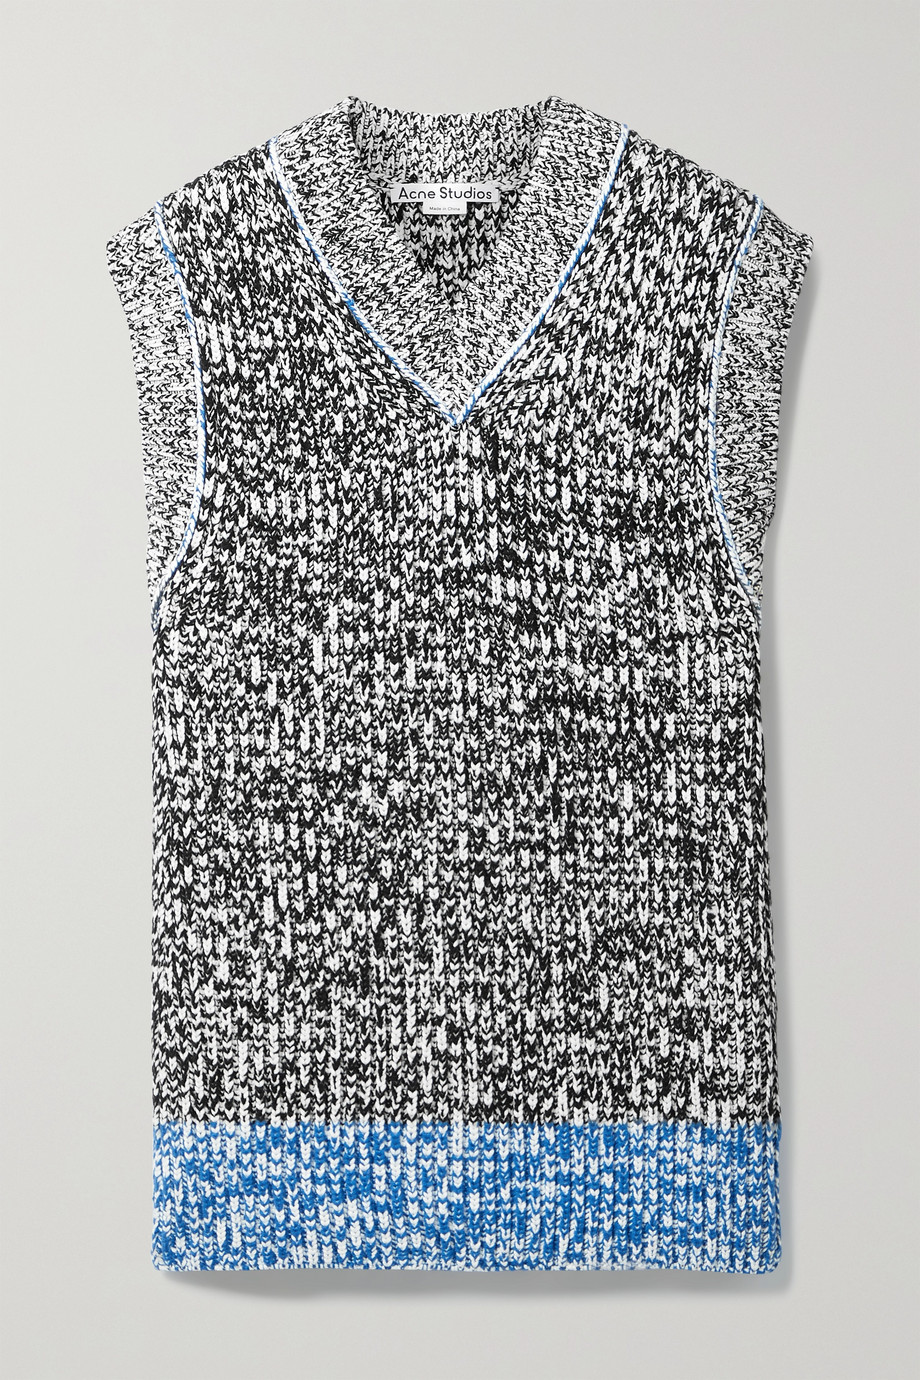 ACNE STUDIOS Oversized knitted tank